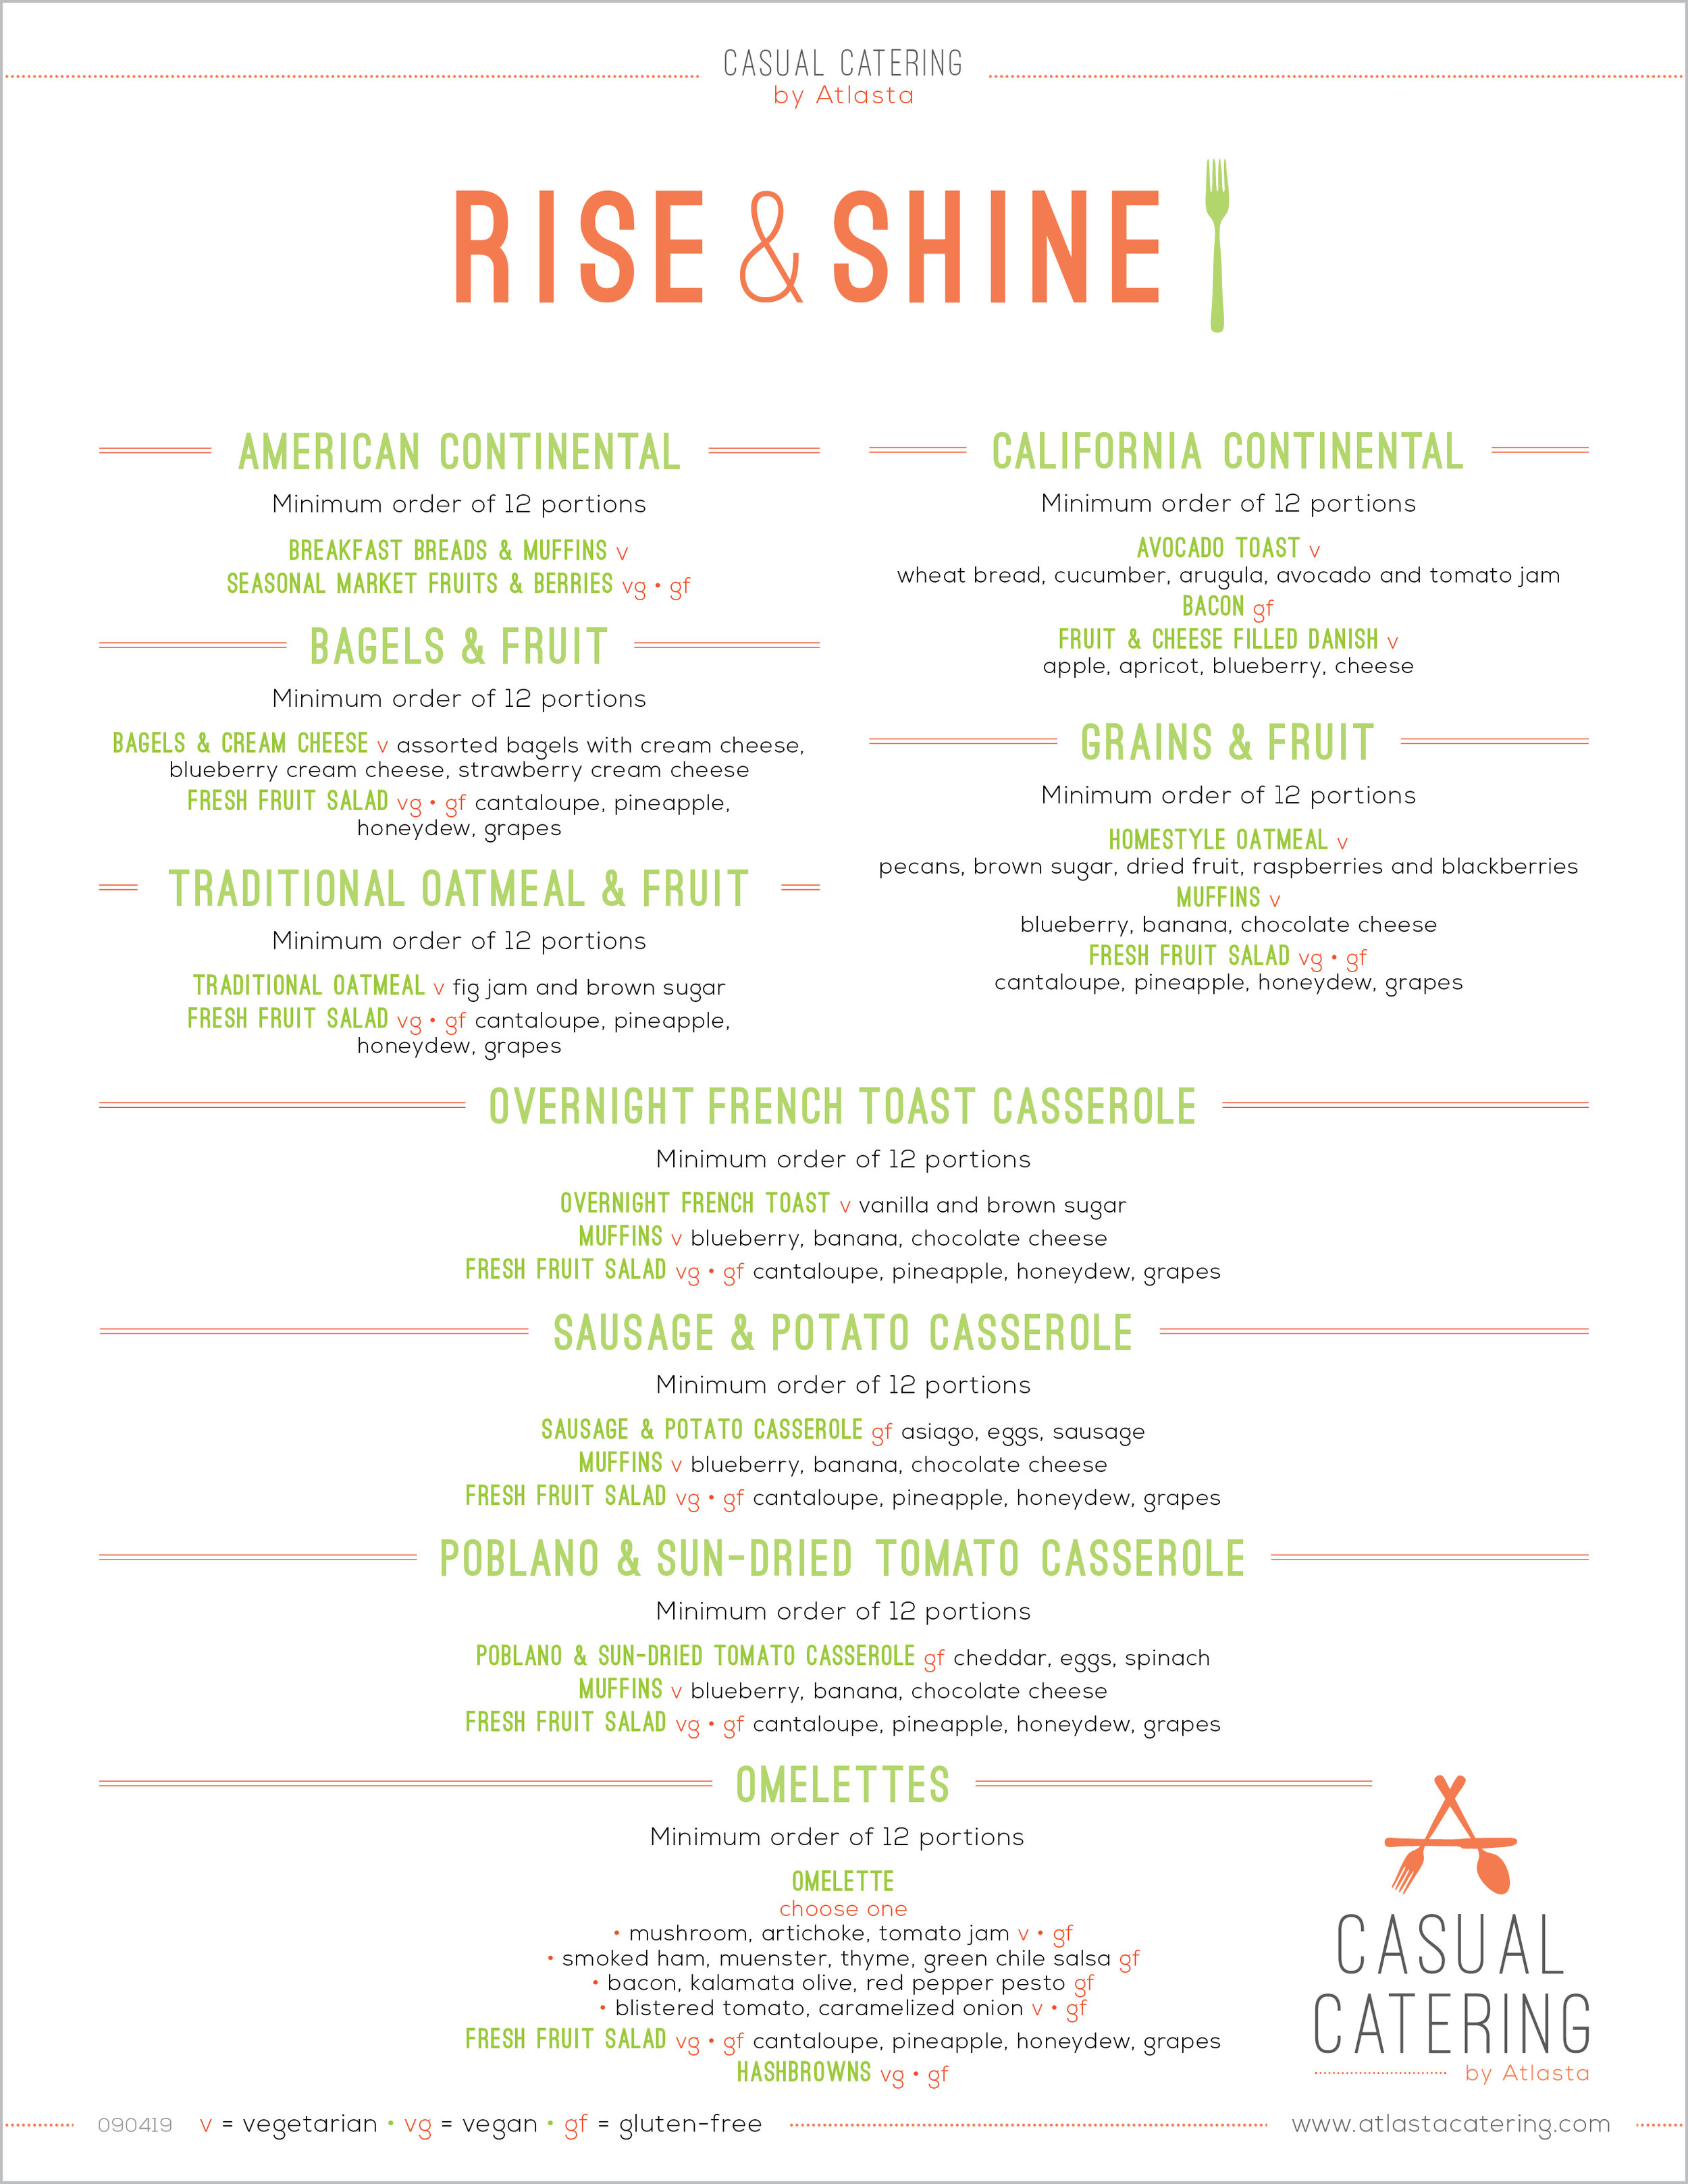 01 Casual Catering - Rise & Shine V6.jpg